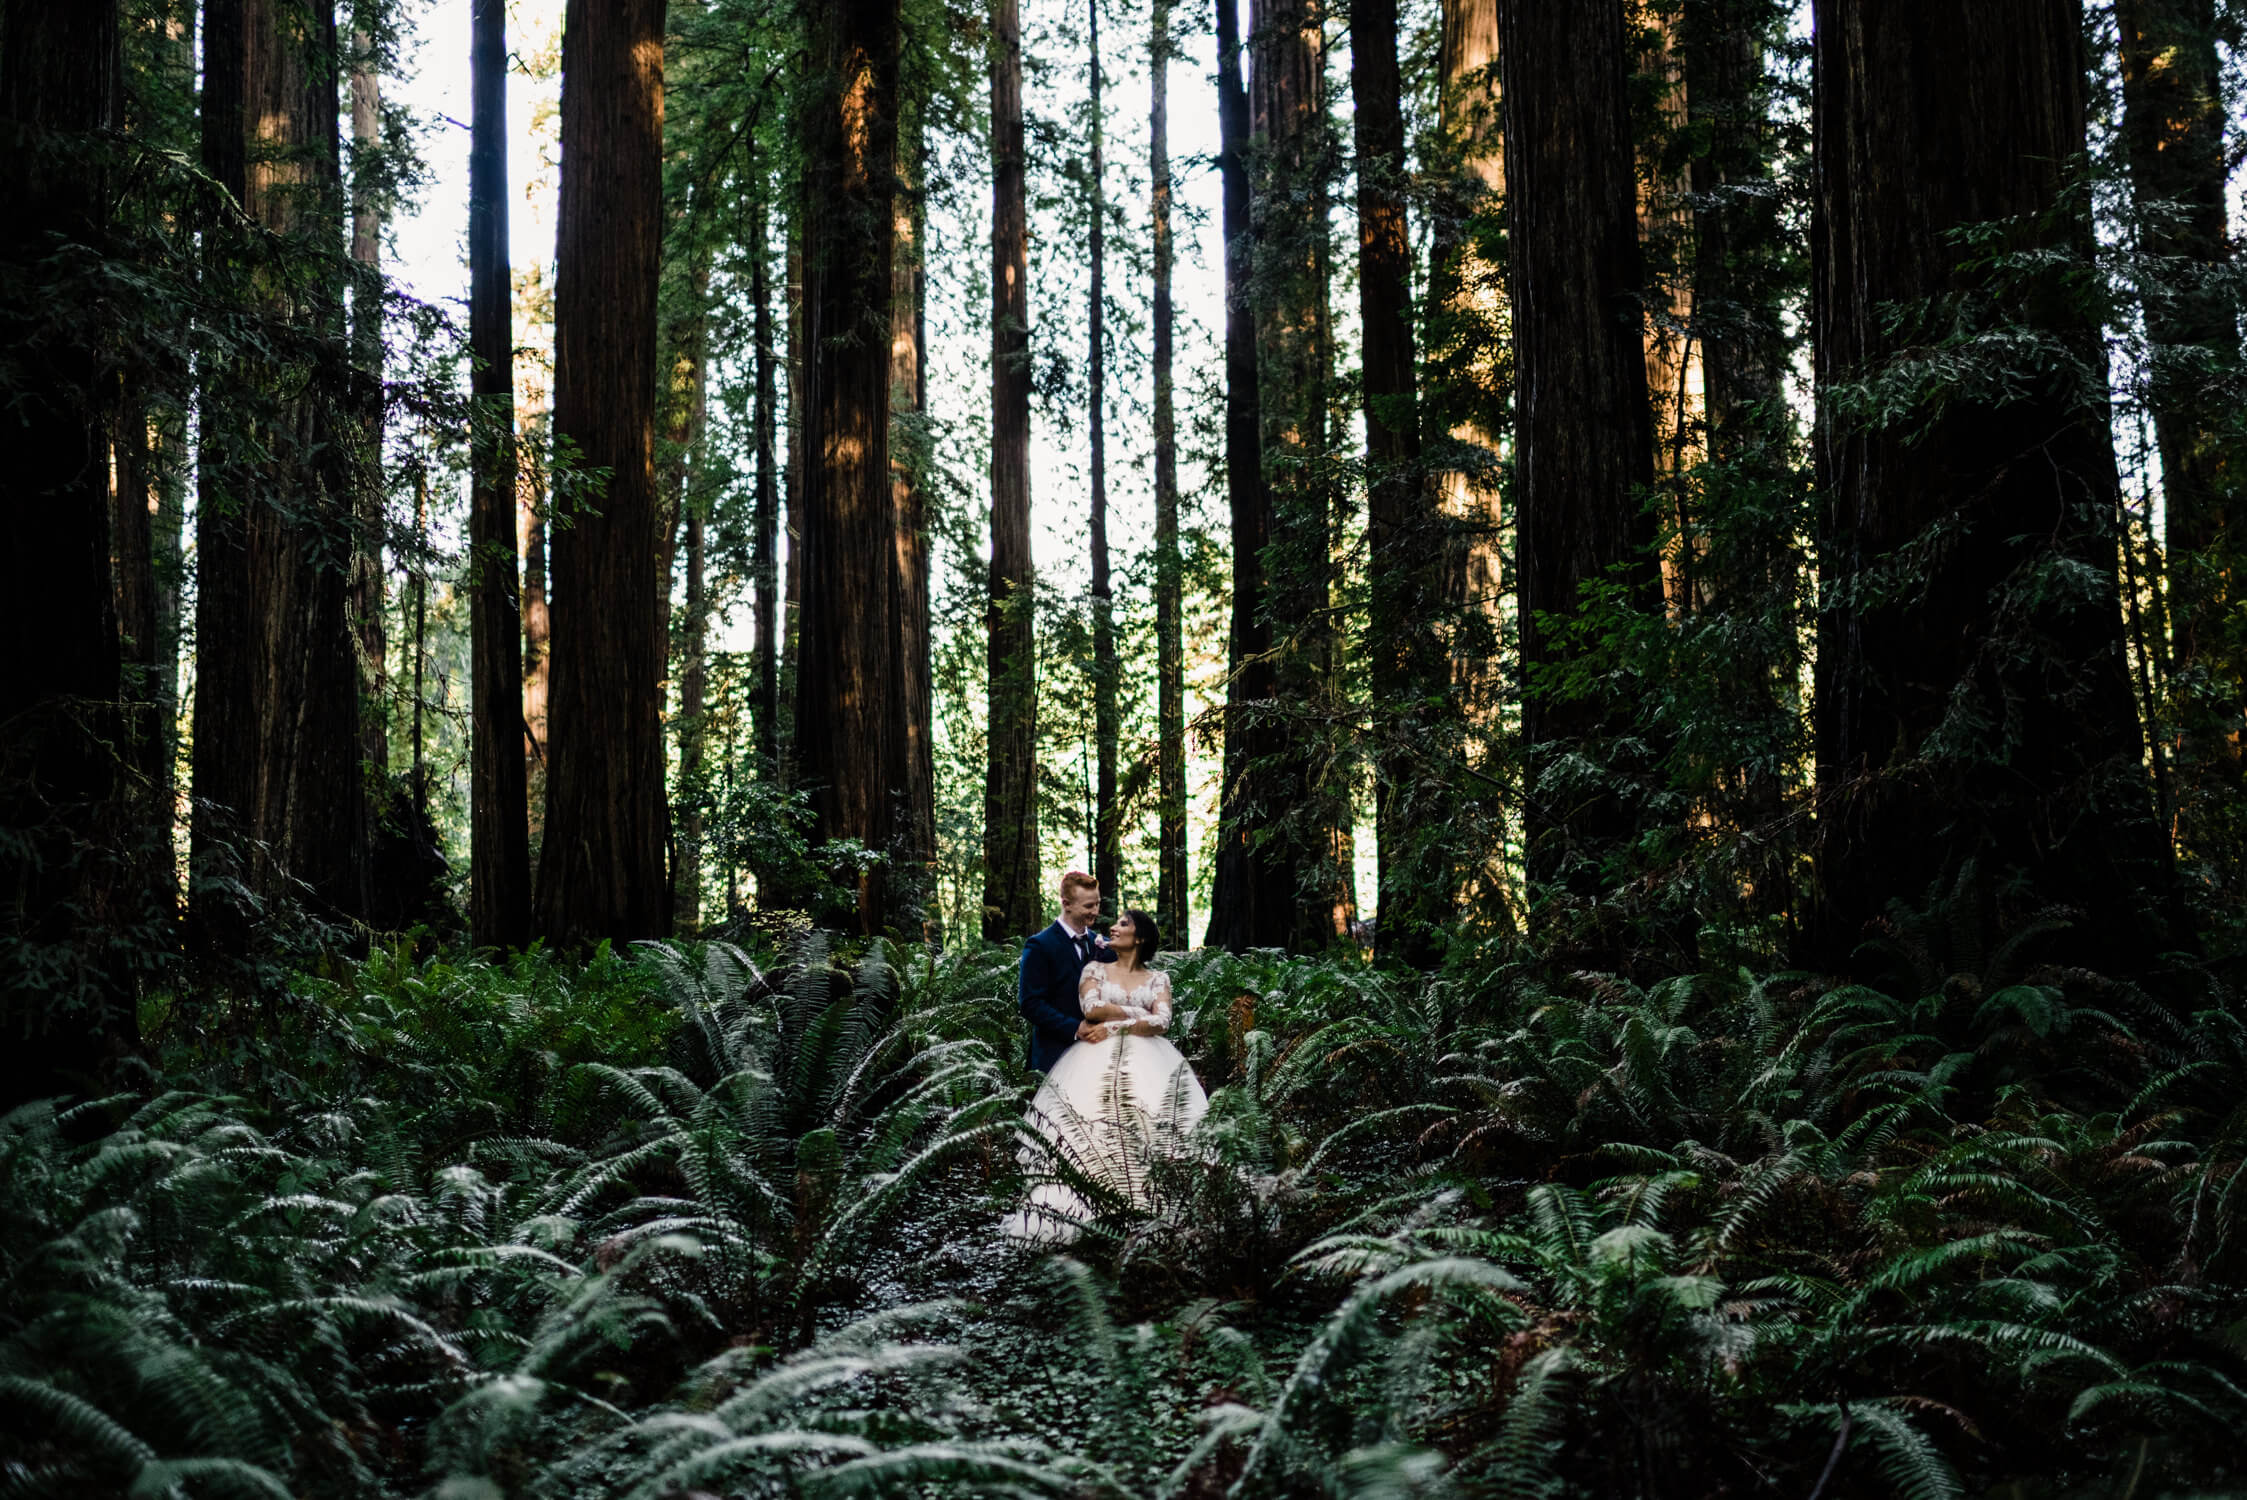 Adventure elopement photographer, redwoods elopement photographer